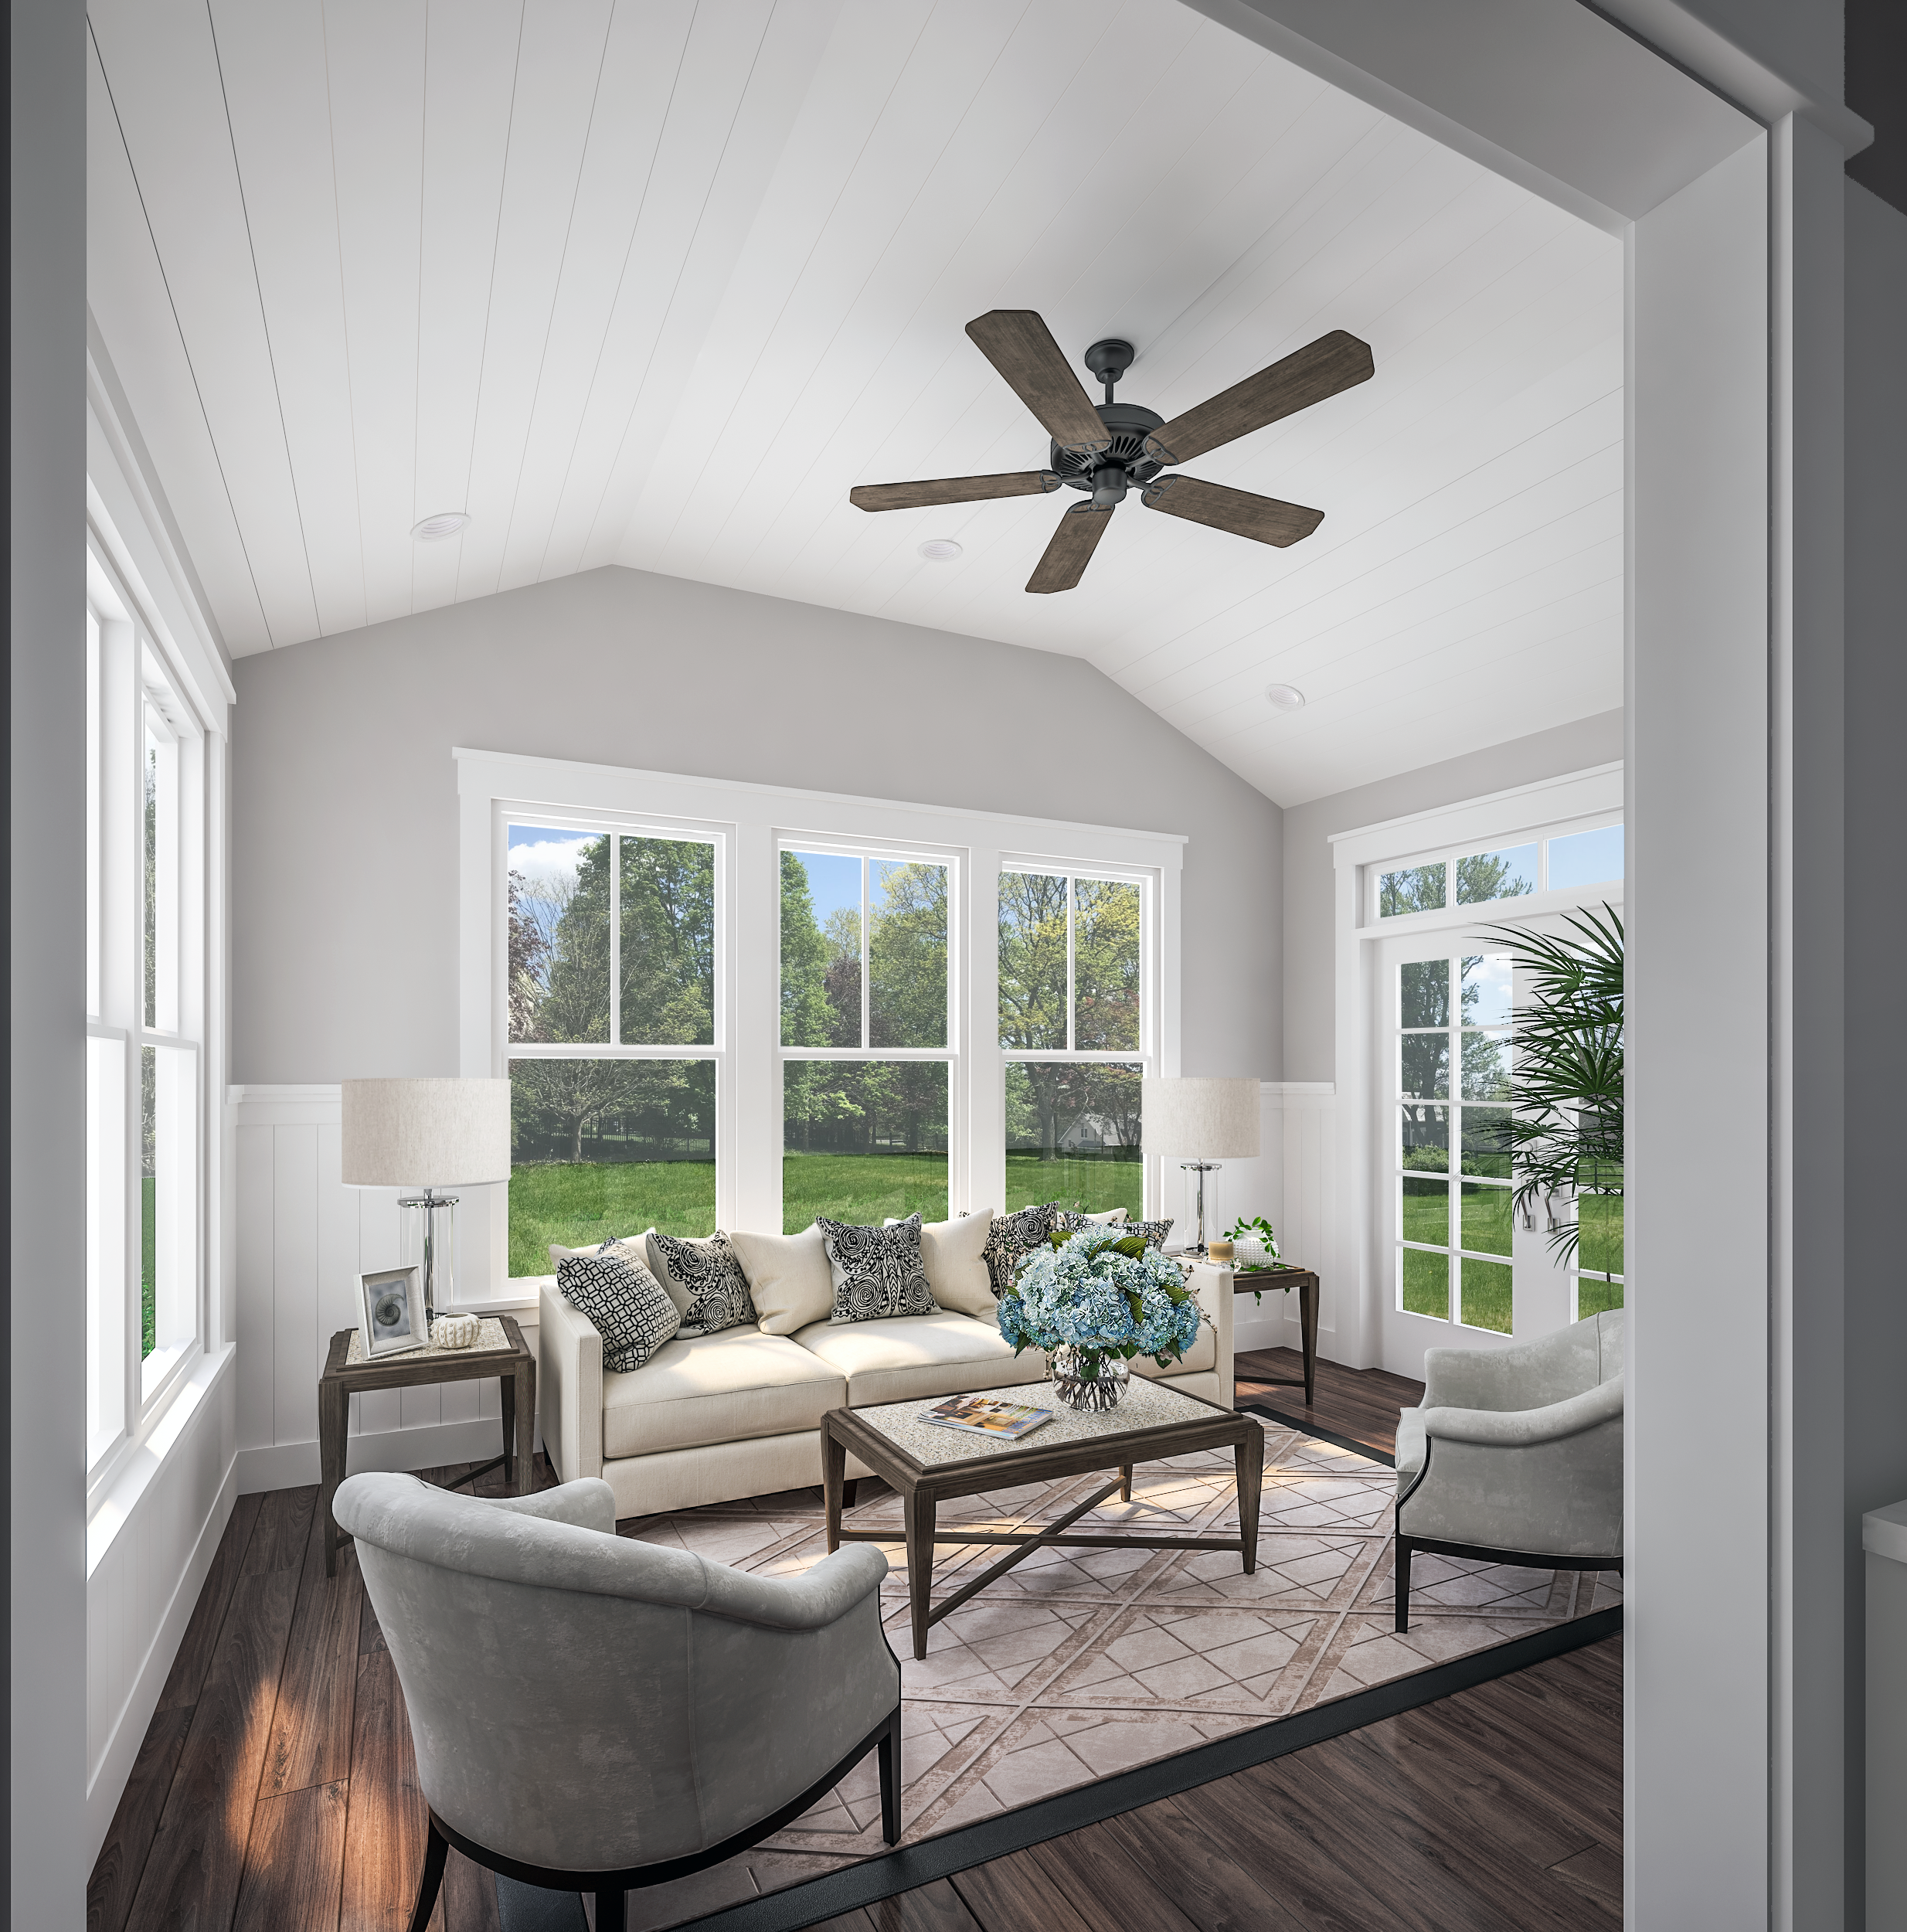 Sandy Ridge_View at Sunroom_Final_A.png